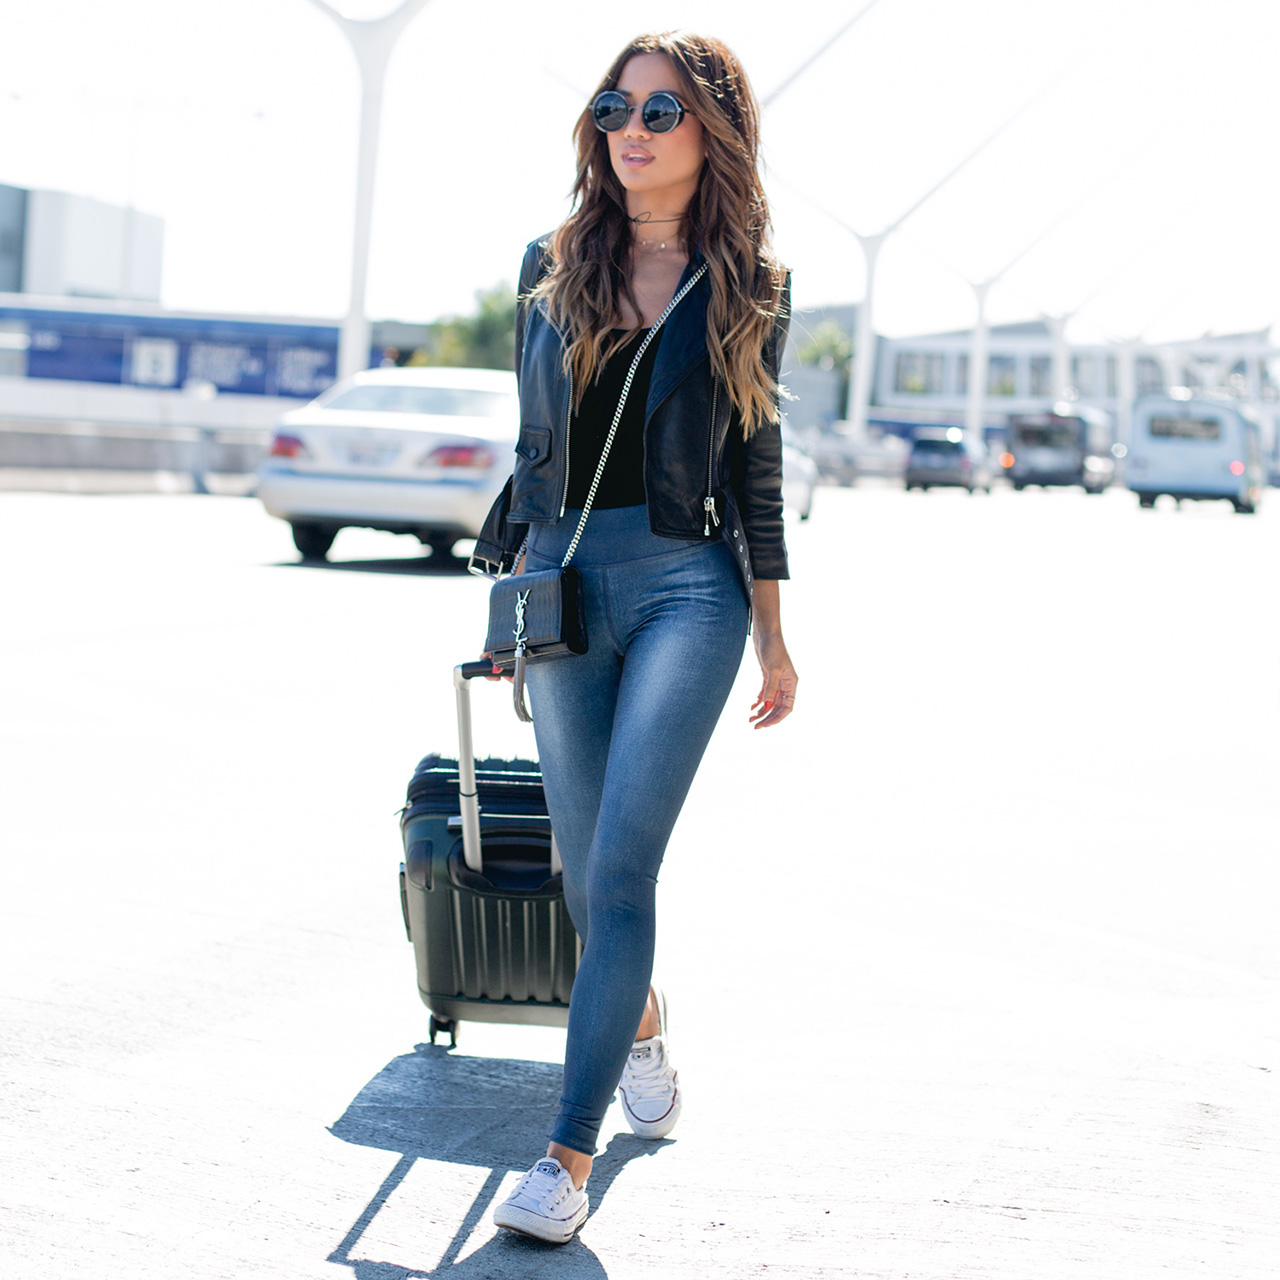 Jessi Malay Best 10 Travel Outfits